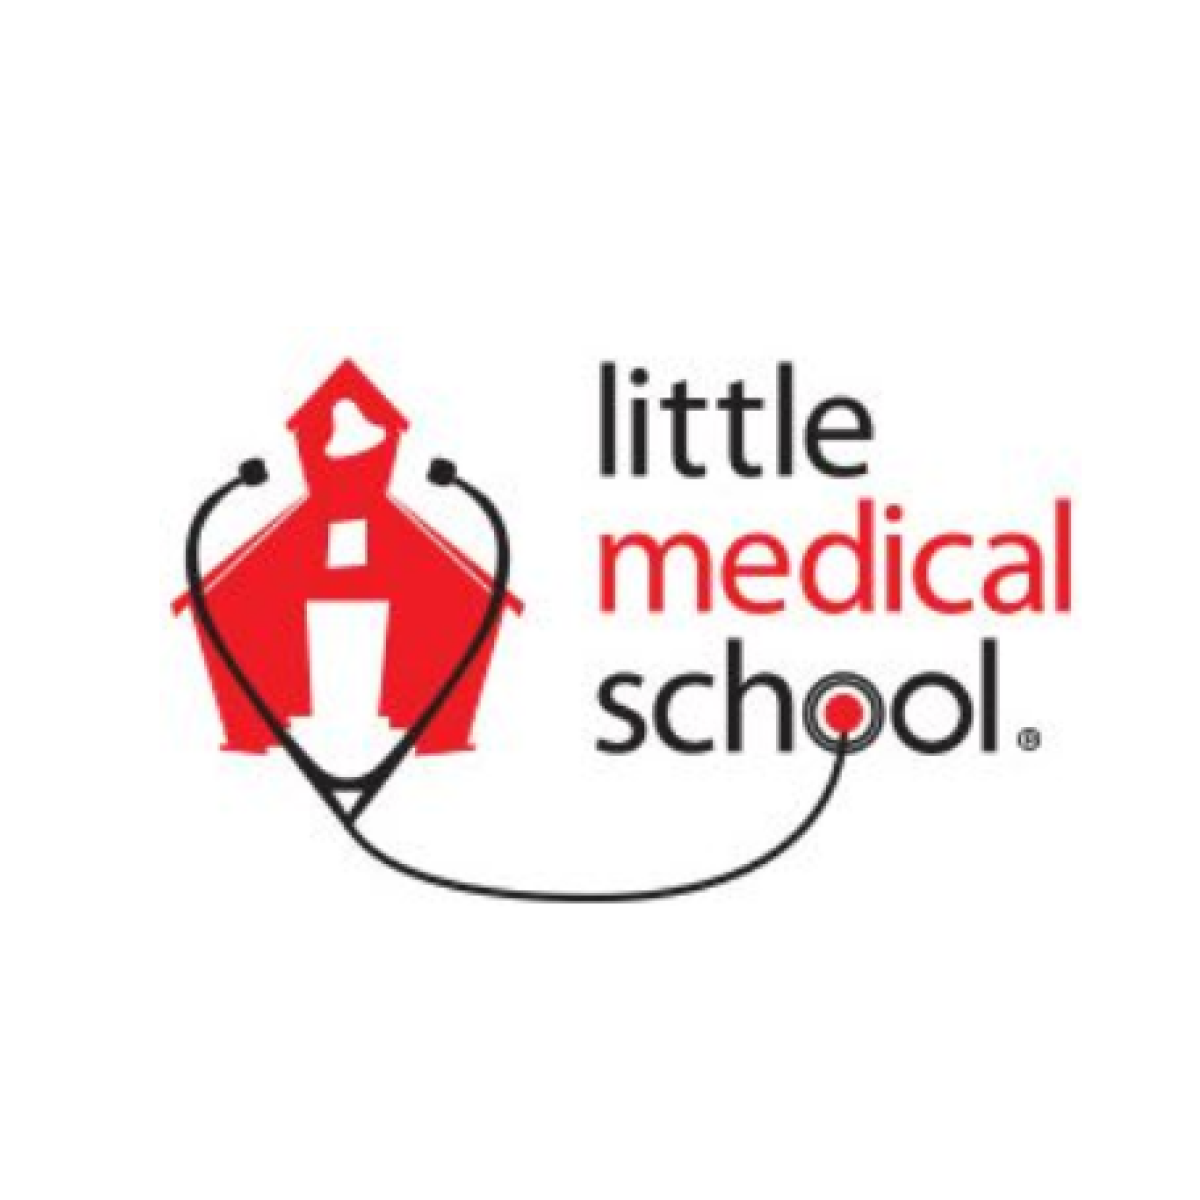 Little Medical School Little Medical School